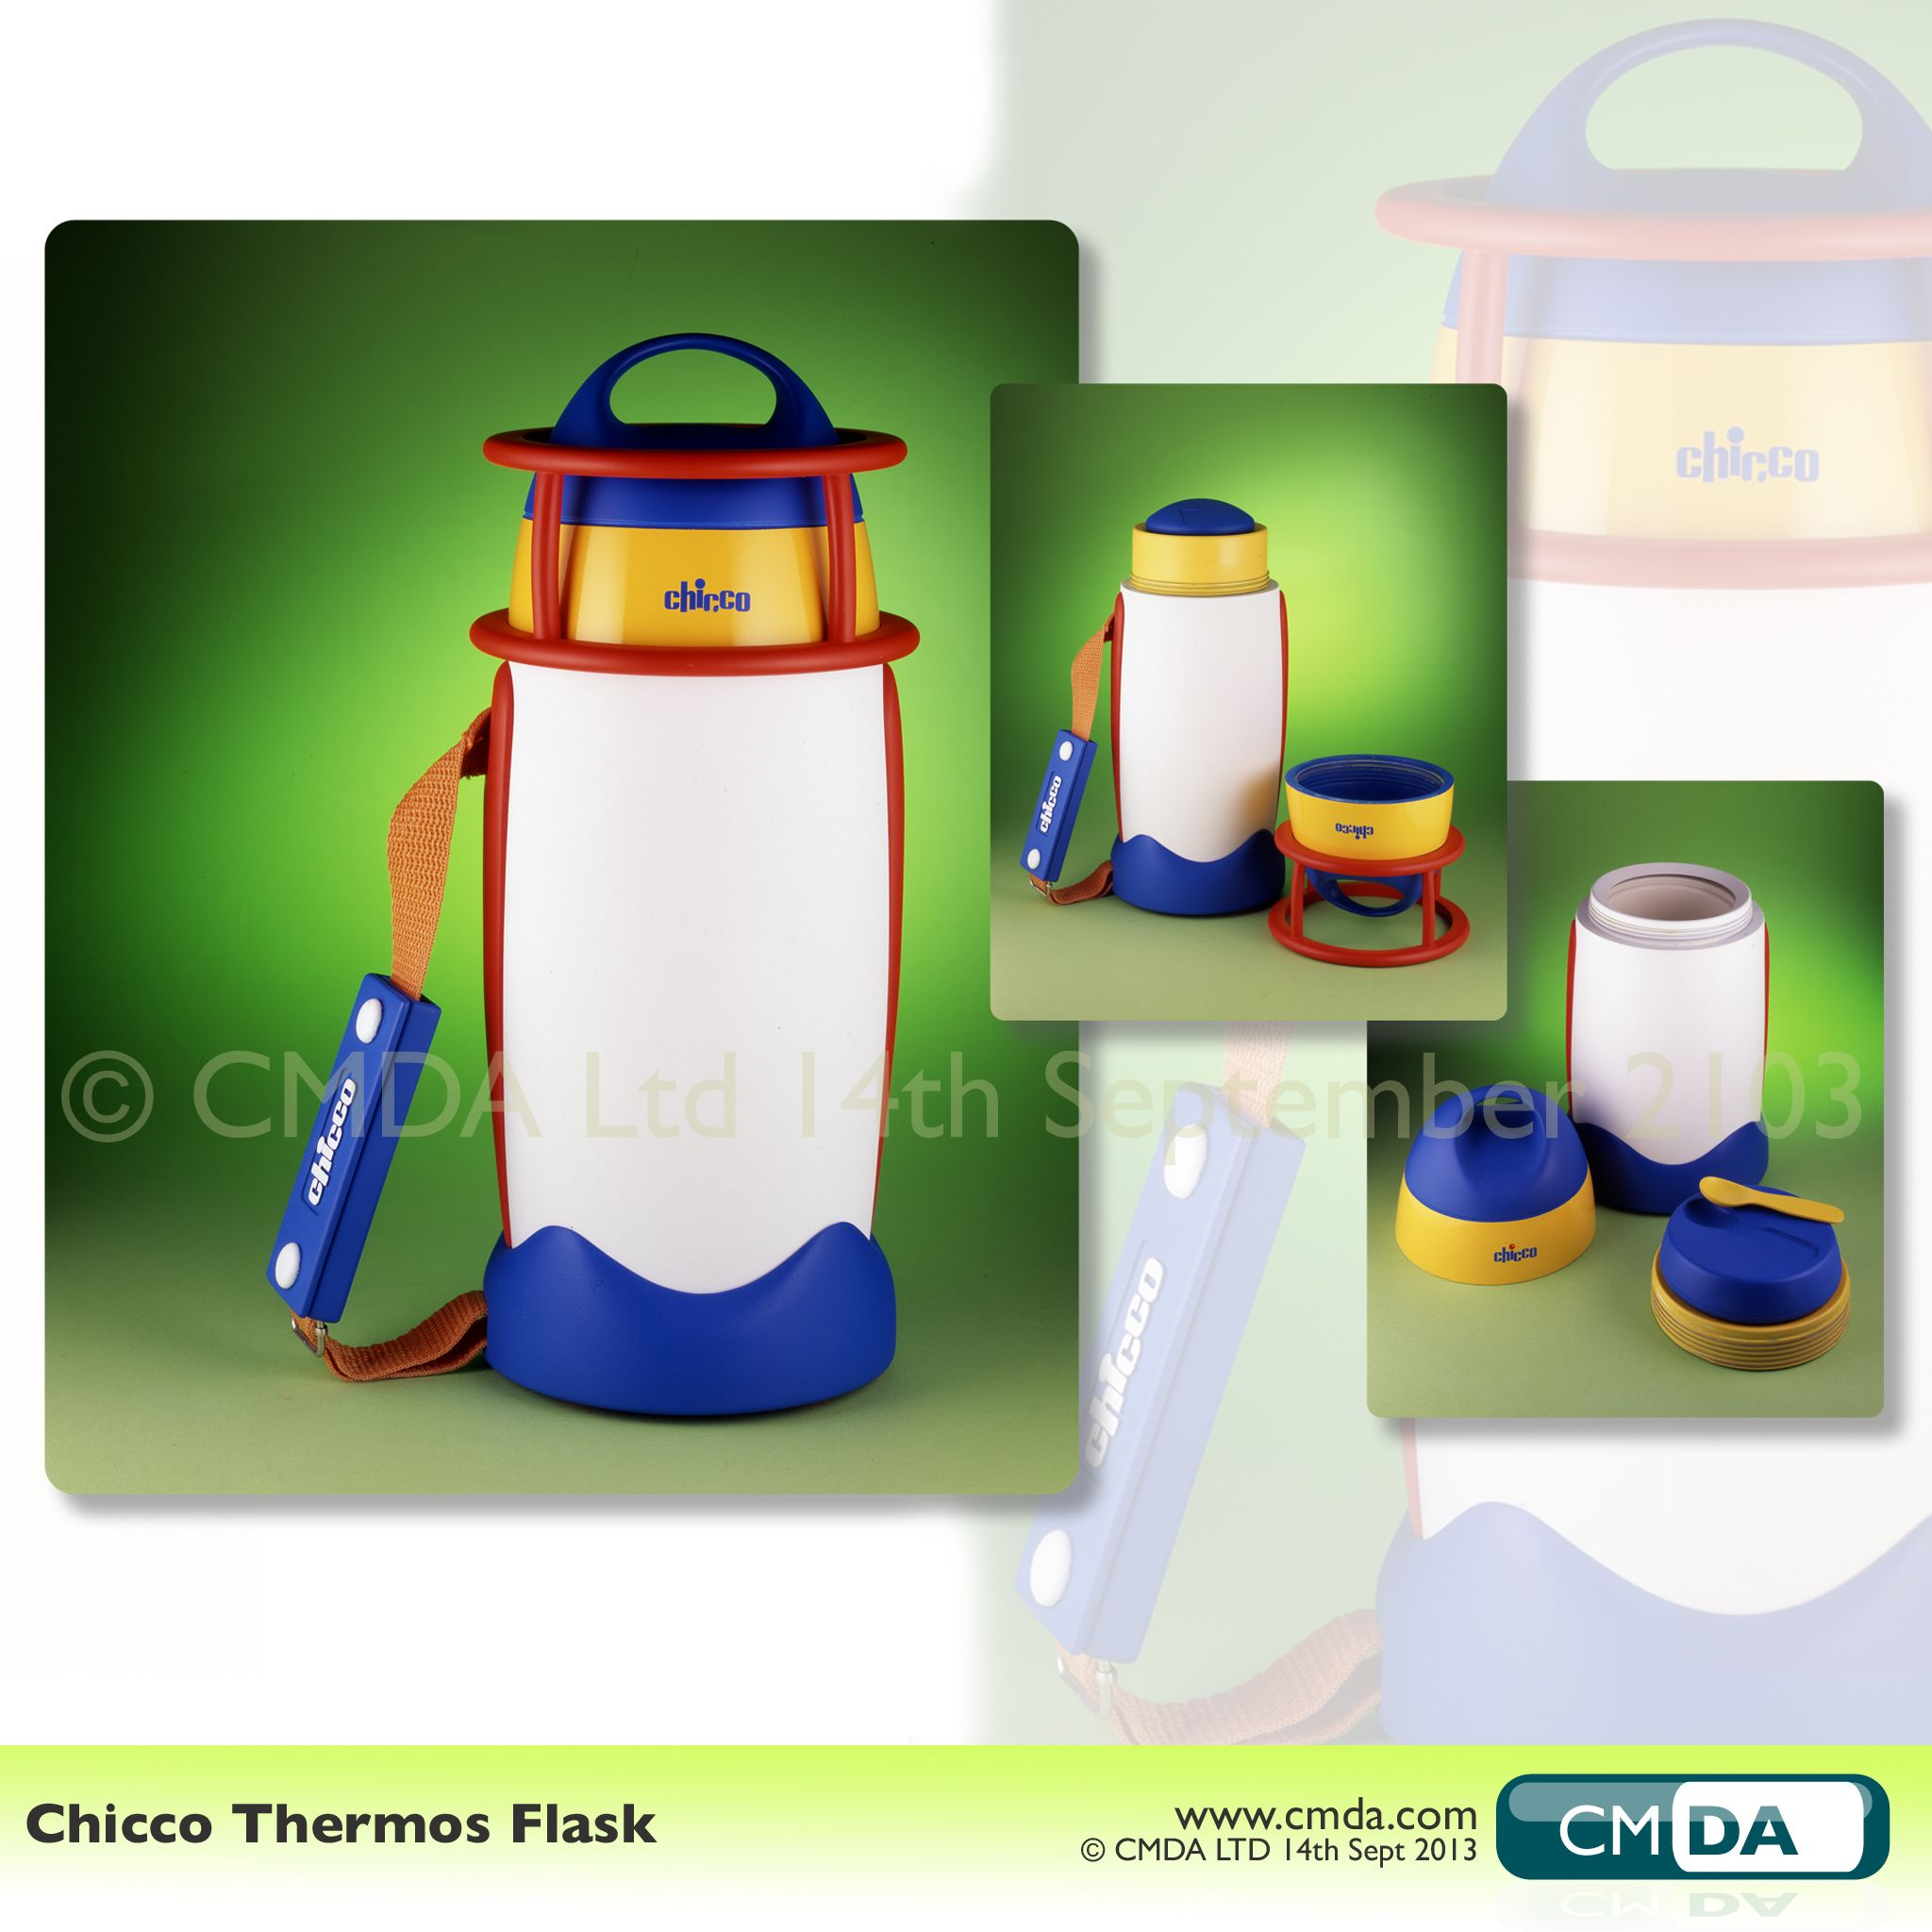 Chicco Baby Food Thermos A Chicco Thermos Flask Designed By Cmda That Can Keep